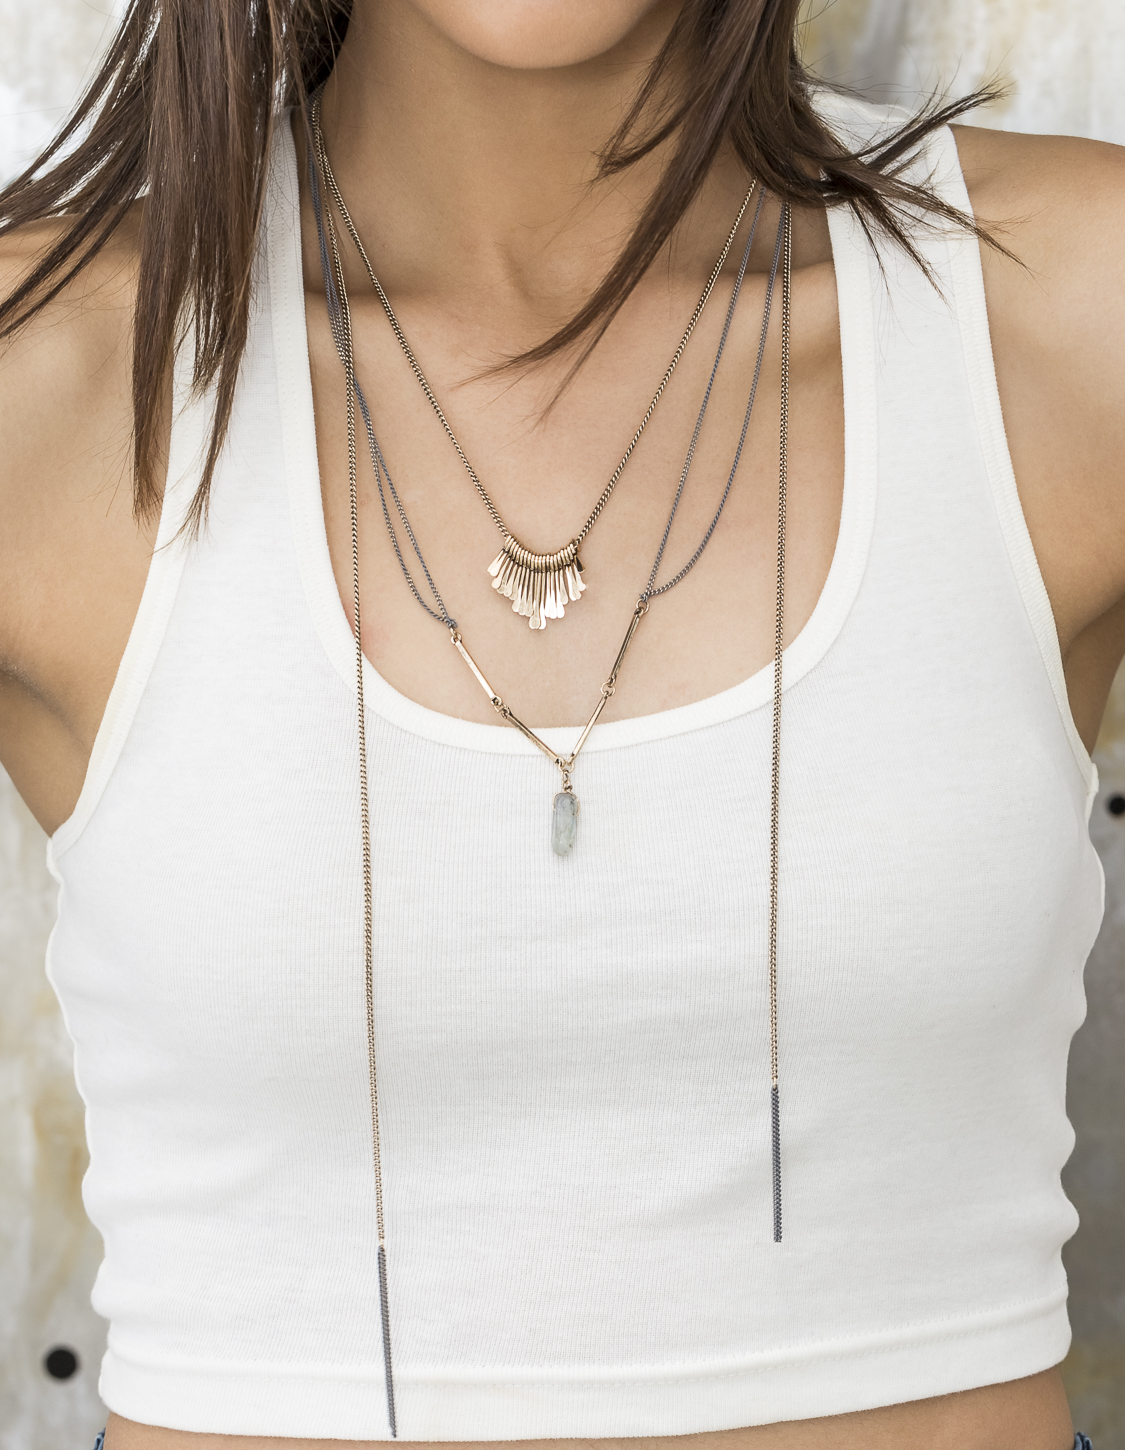 Layered Tassel Necklace with Pendant